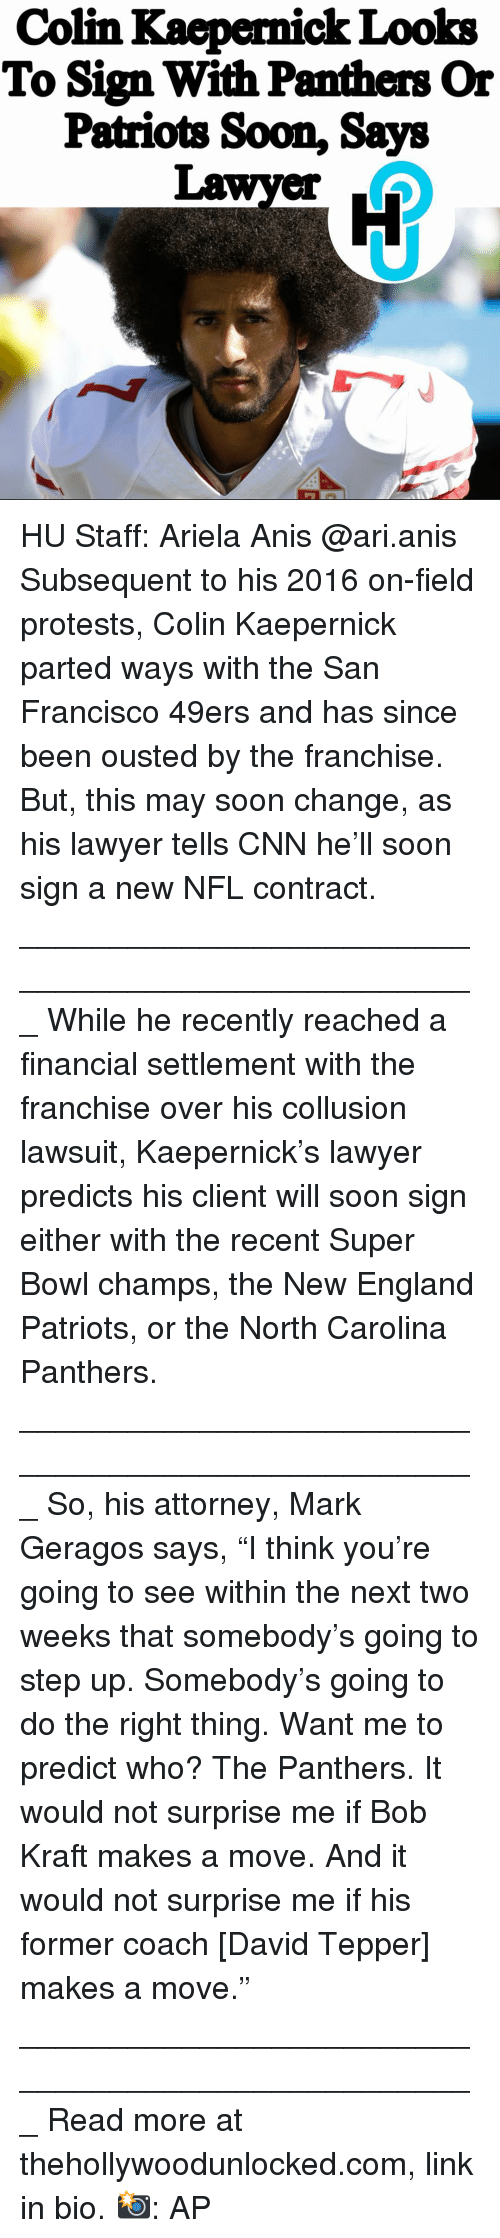 """San Francisco 49ers, Carolina Panthers, and cnn.com: Colin Kaepernick Looks  To Sign With Panthers Or  Patriots Soon, Says  Lawyer  16 HU Staff: Ariela Anis @ari.anis Subsequent to his 2016 on-field protests, Colin Kaepernick parted ways with the San Francisco 49ers and has since been ousted by the franchise. But, this may soon change, as his lawyer tells CNN he'll soon sign a new NFL contract. ___________________________________________________ While he recently reached a financial settlement with the franchise over his collusion lawsuit, Kaepernick's lawyer predicts his client will soon sign either with the recent Super Bowl champs, the New England Patriots, or the North Carolina Panthers. ___________________________________________________ So, his attorney, Mark Geragos says, """"I think you're going to see within the next two weeks that somebody's going to step up. Somebody's going to do the right thing. Want me to predict who? The Panthers. It would not surprise me if Bob Kraft makes a move. And it would not surprise me if his former coach [David Tepper] makes a move."""" ___________________________________________________ Read more at thehollywoodunlocked.com, link in bio. 📸: AP"""